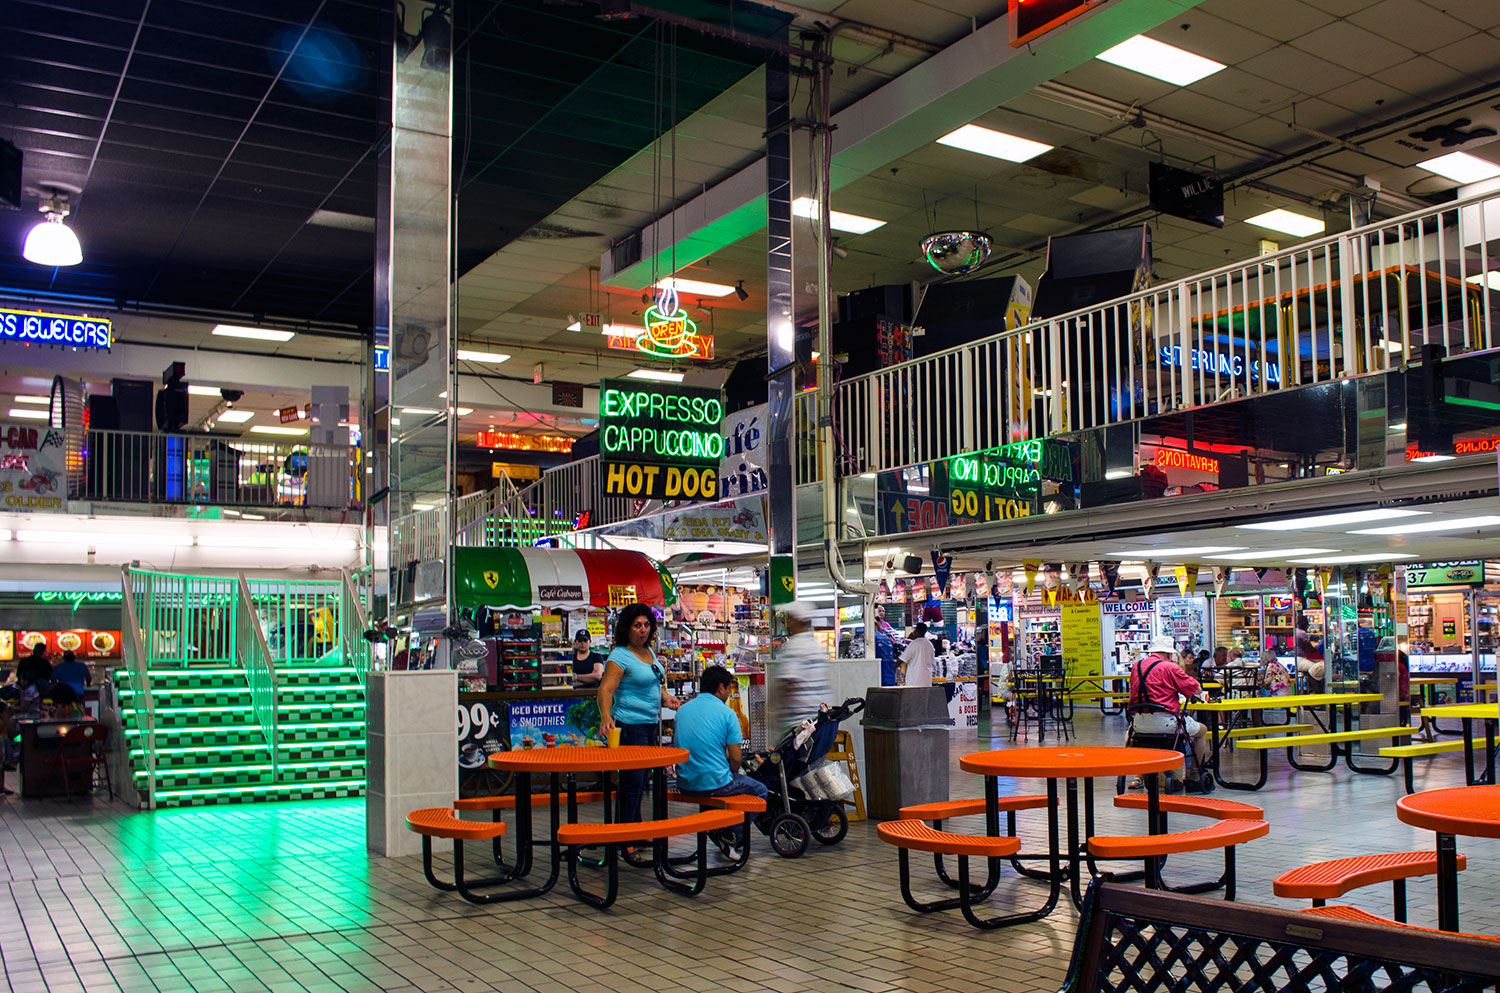 Indoor seating area at the Swap Shop in Ft. Lauderdale Florida